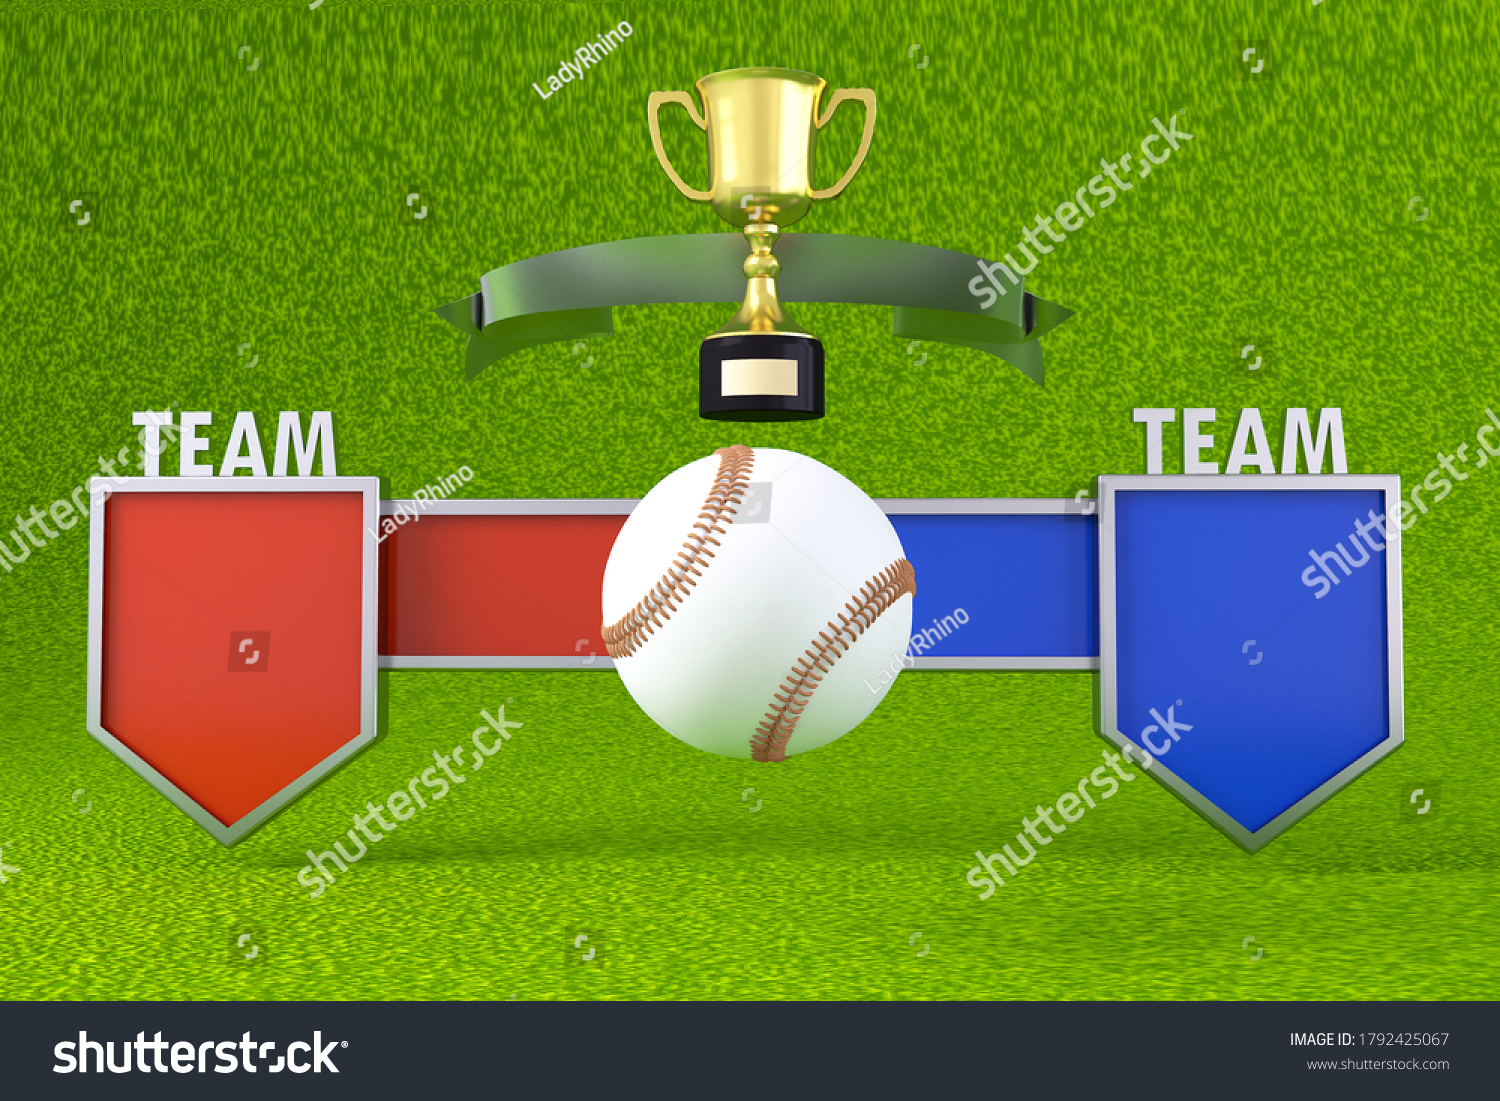 stock-photo-baseball-match-team-or-tourn